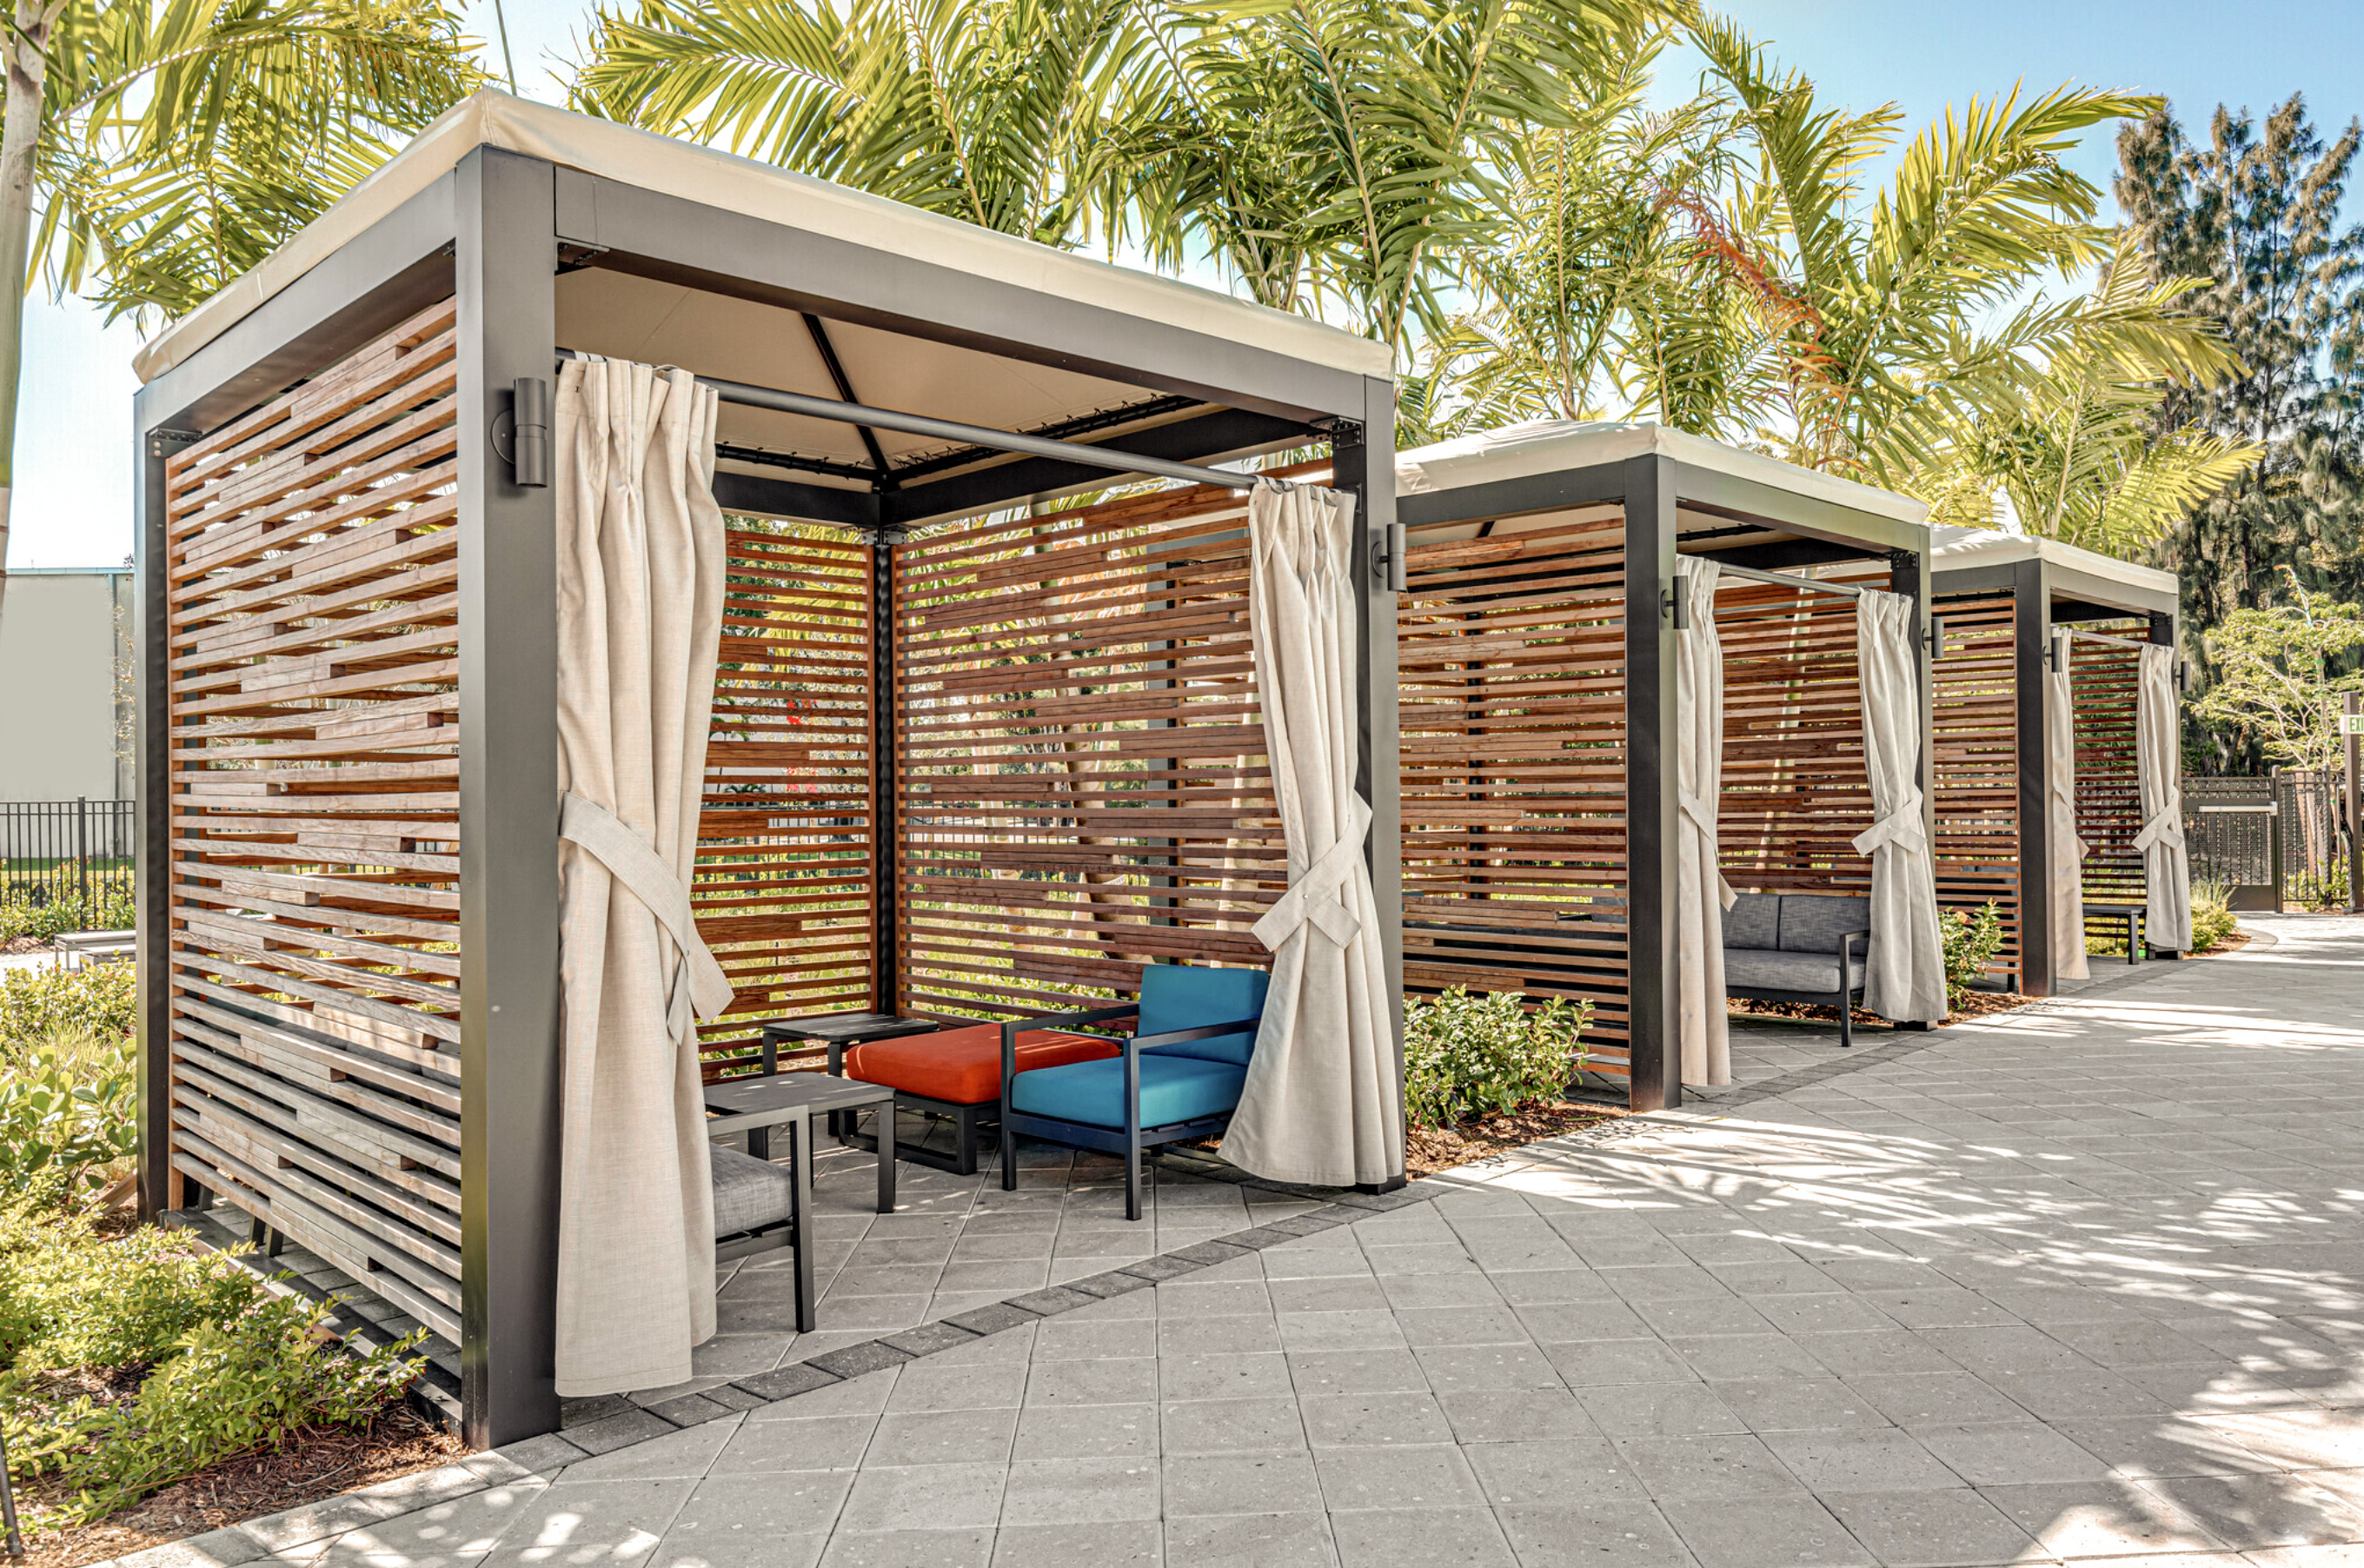 Three Cabanas with palm trees behind